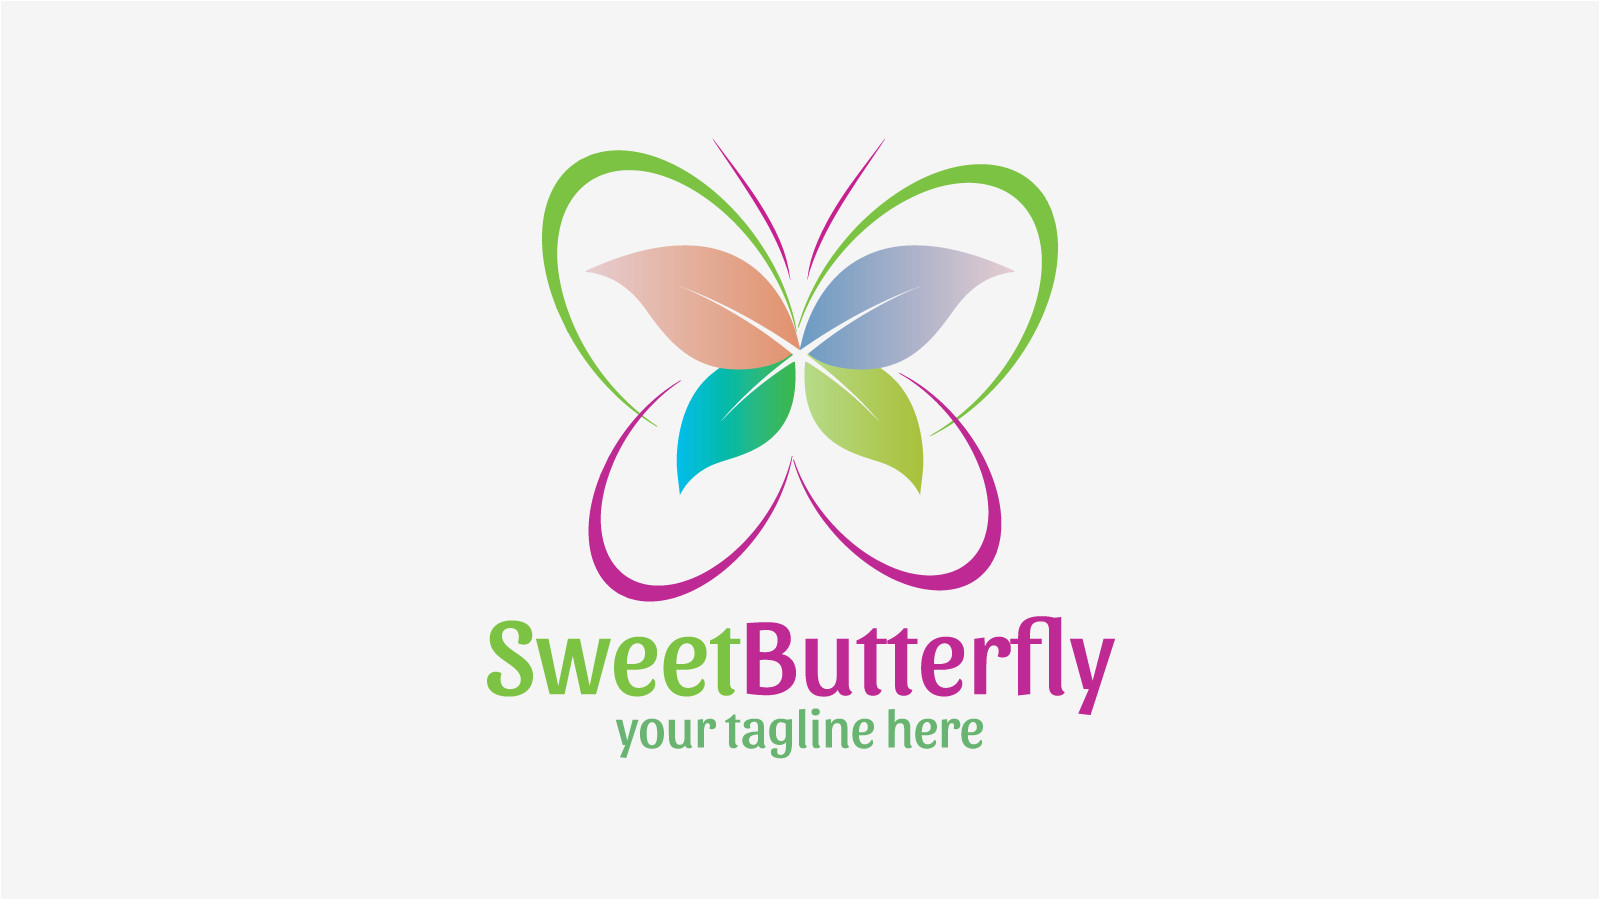 Design A Company Logo Free Templates Sweetbutterfly Free Logo Design Zfreegraphic Free